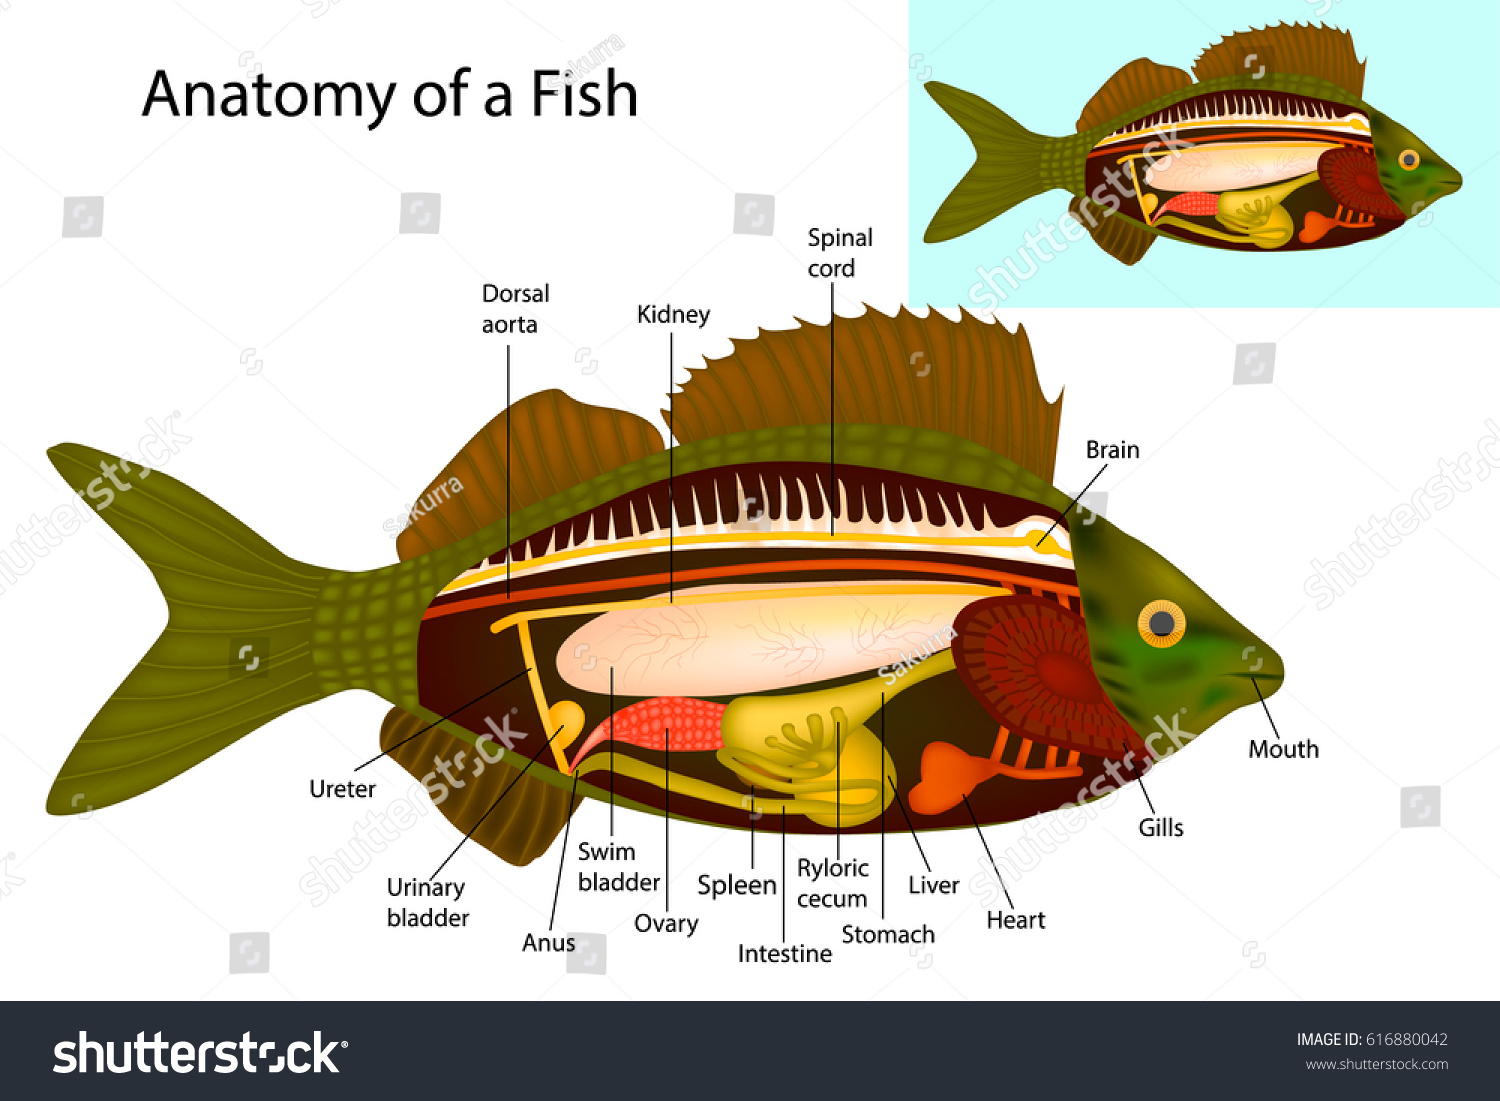 perch internal anatomy diagram wiring for jeep grand cherokee fish organs vector stock